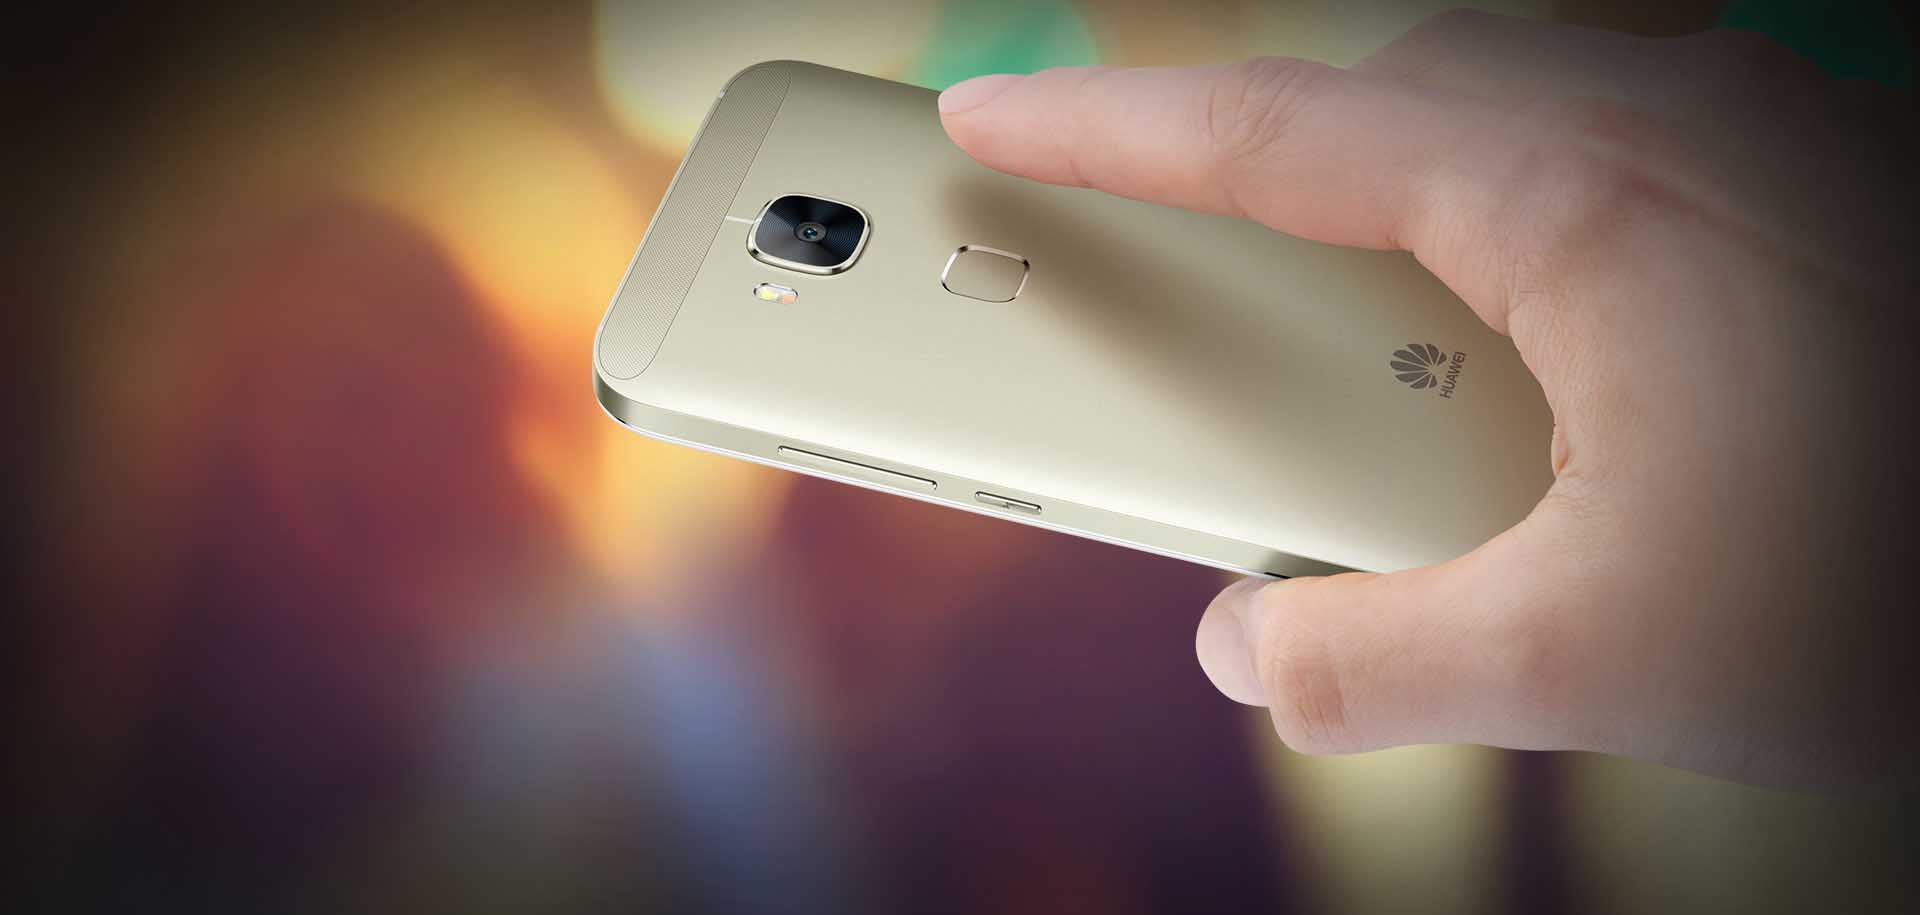 Huawei G8 Dual Sim 4G Gold Your Finger, Your Smartphone